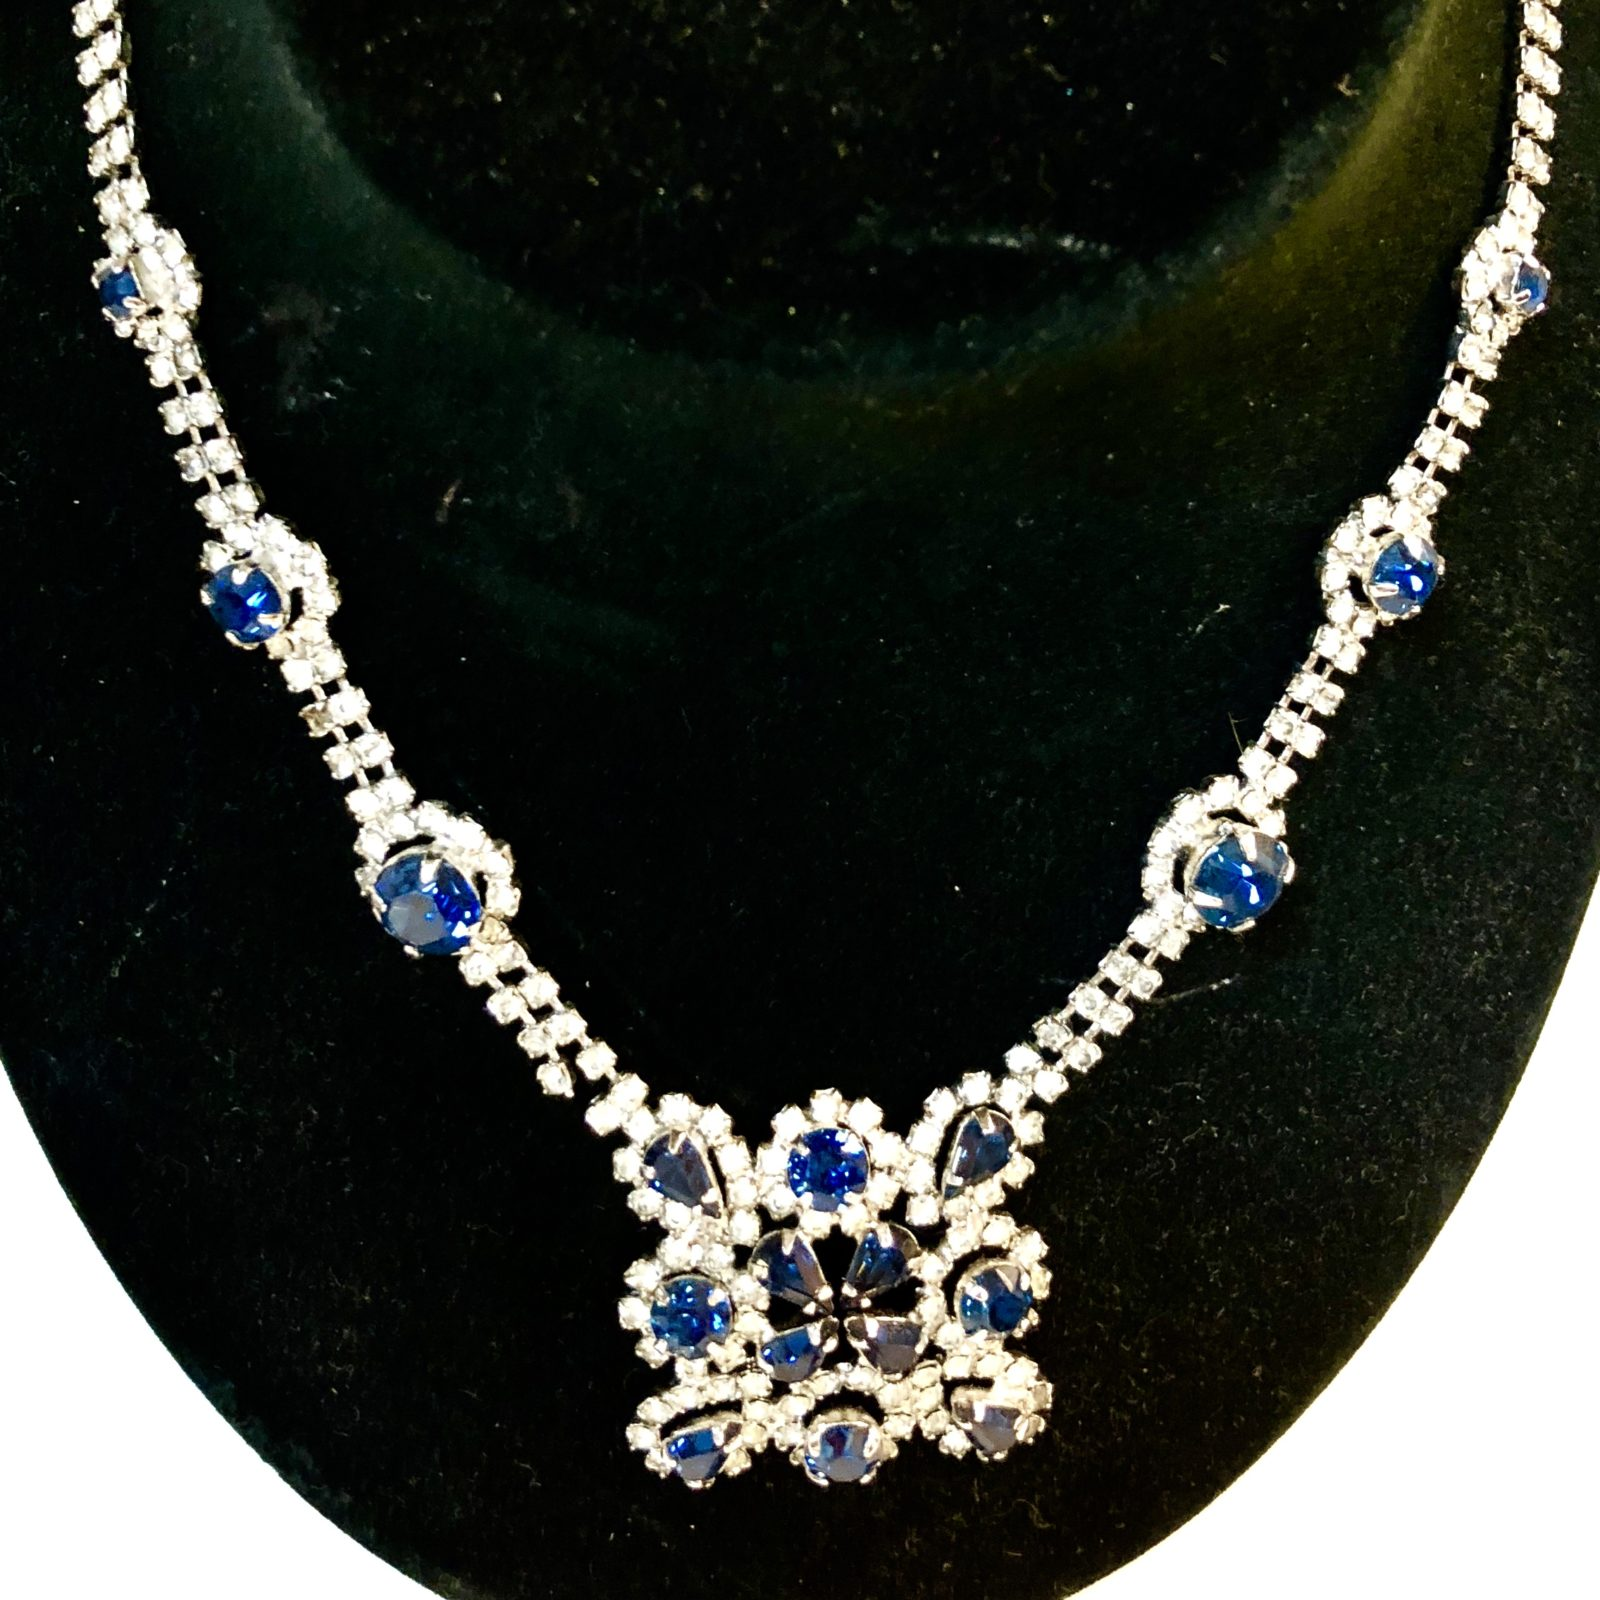 Silver Rhinestone & Blue Gem Necklace • Beautiful silver rhinestone with blue gem necklace. This necklace will add elegance and sparkle to your outfit.